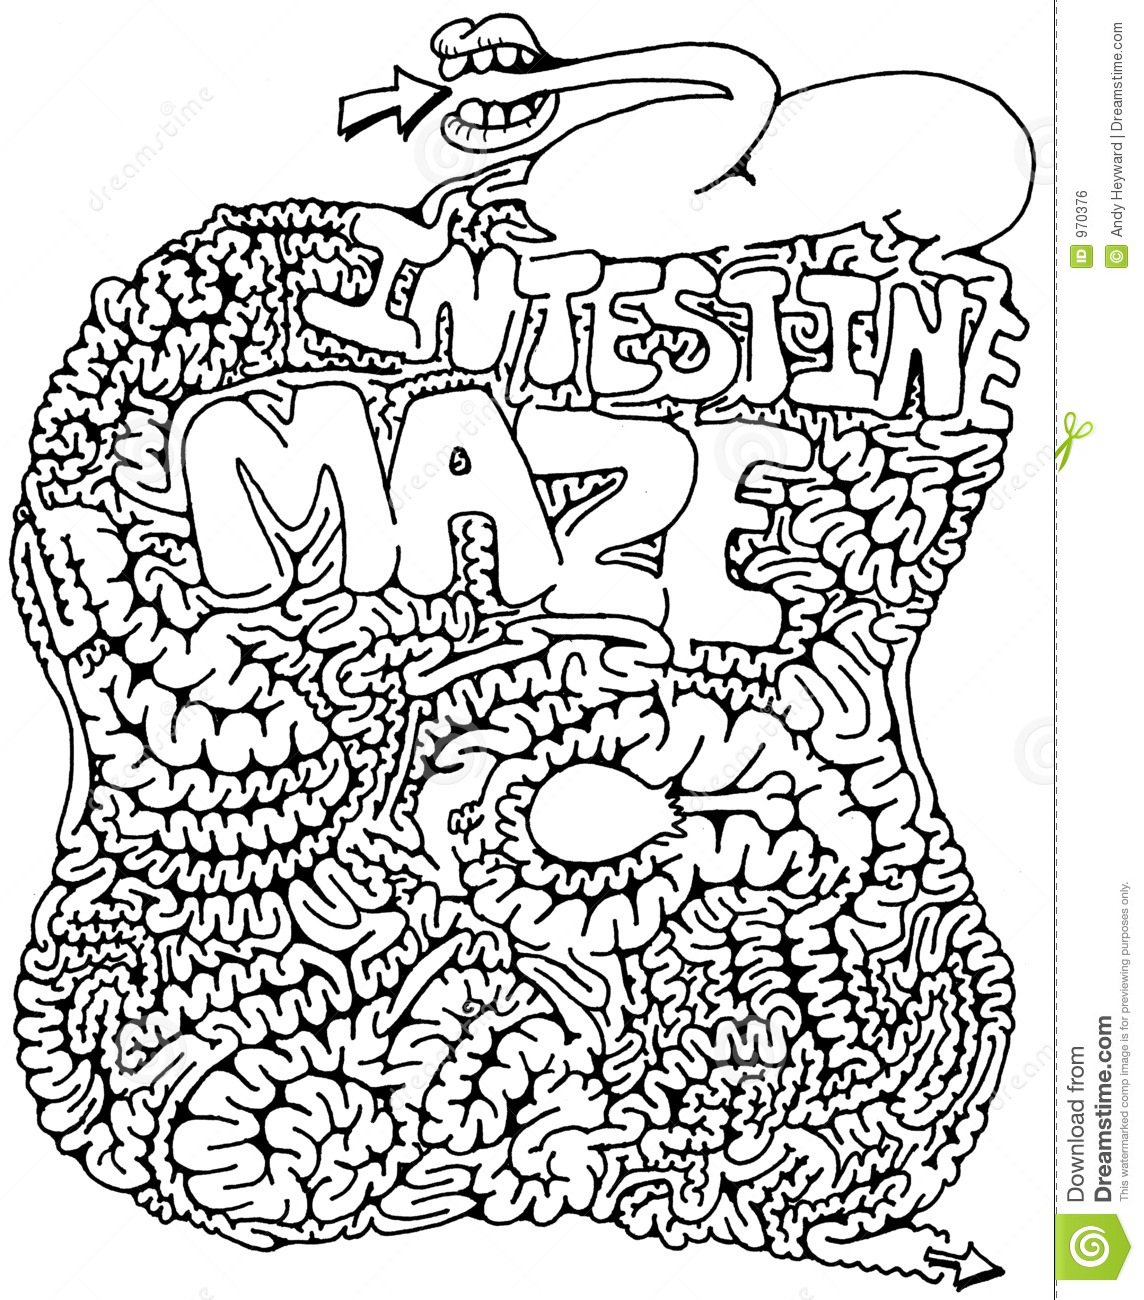 Intestine Maze Stock Illustration Illustration Of Guts